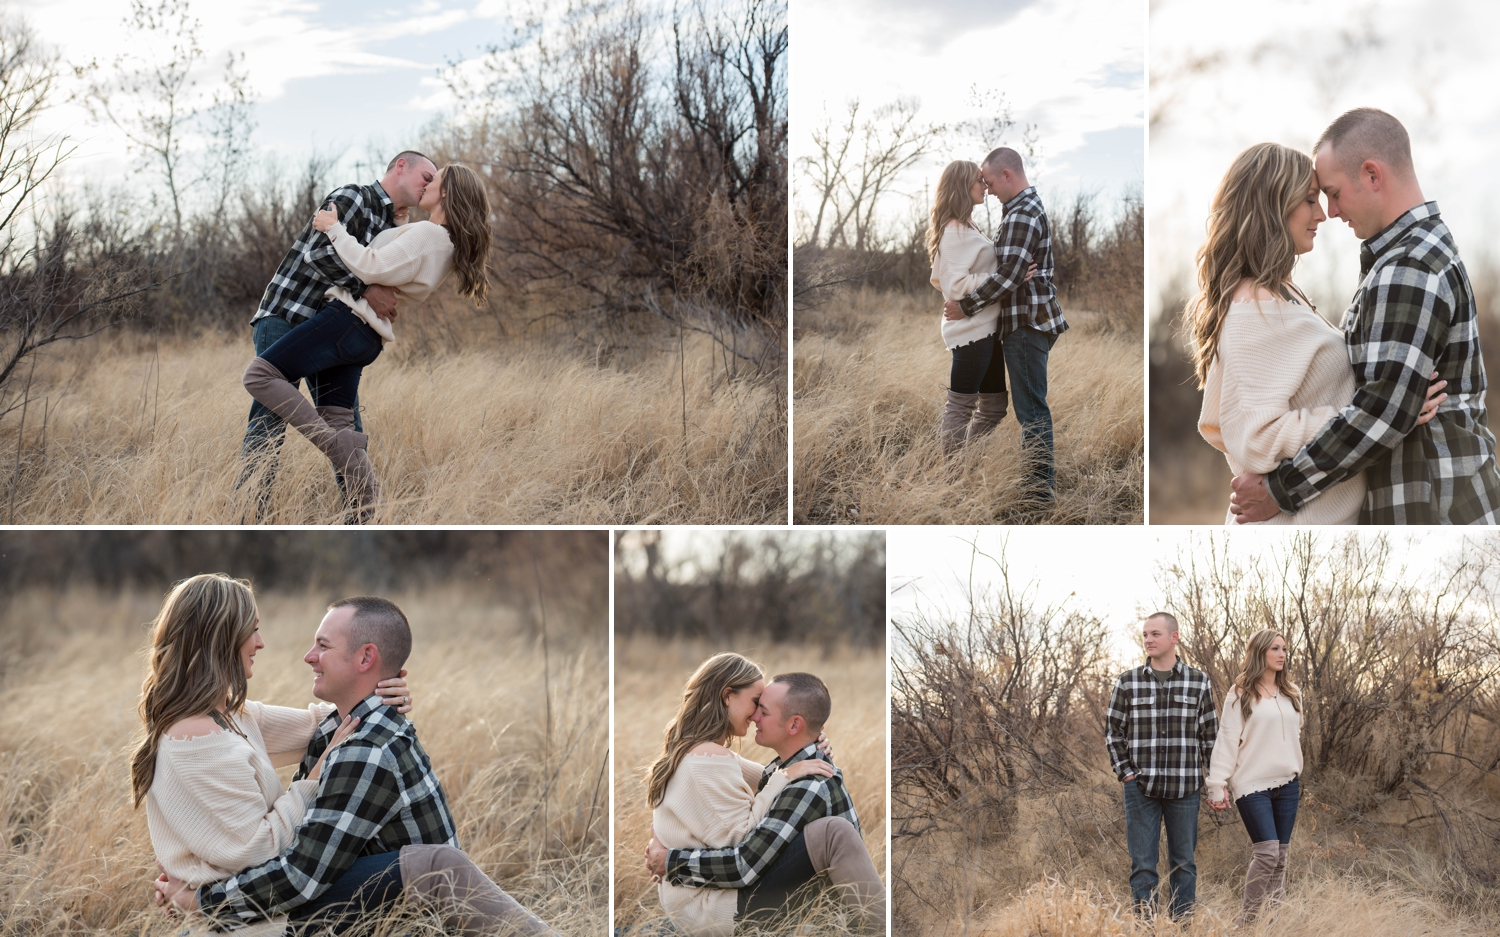 winter engagment photography garden city ks 1.jpg